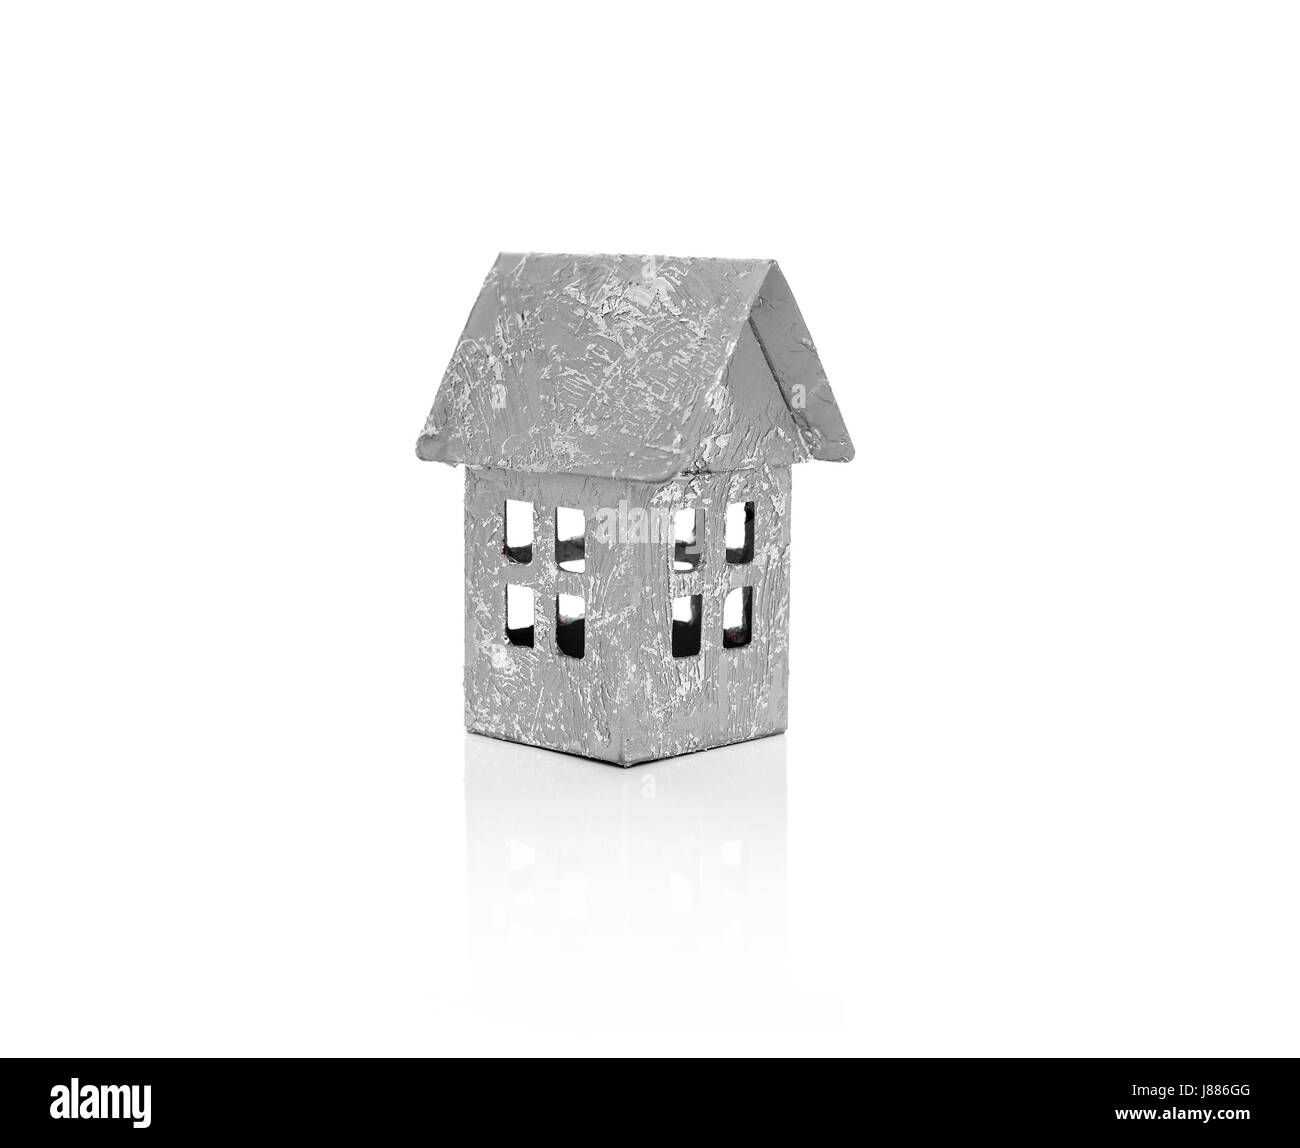 Model of a small house. Isolated on white background. - Stock Image